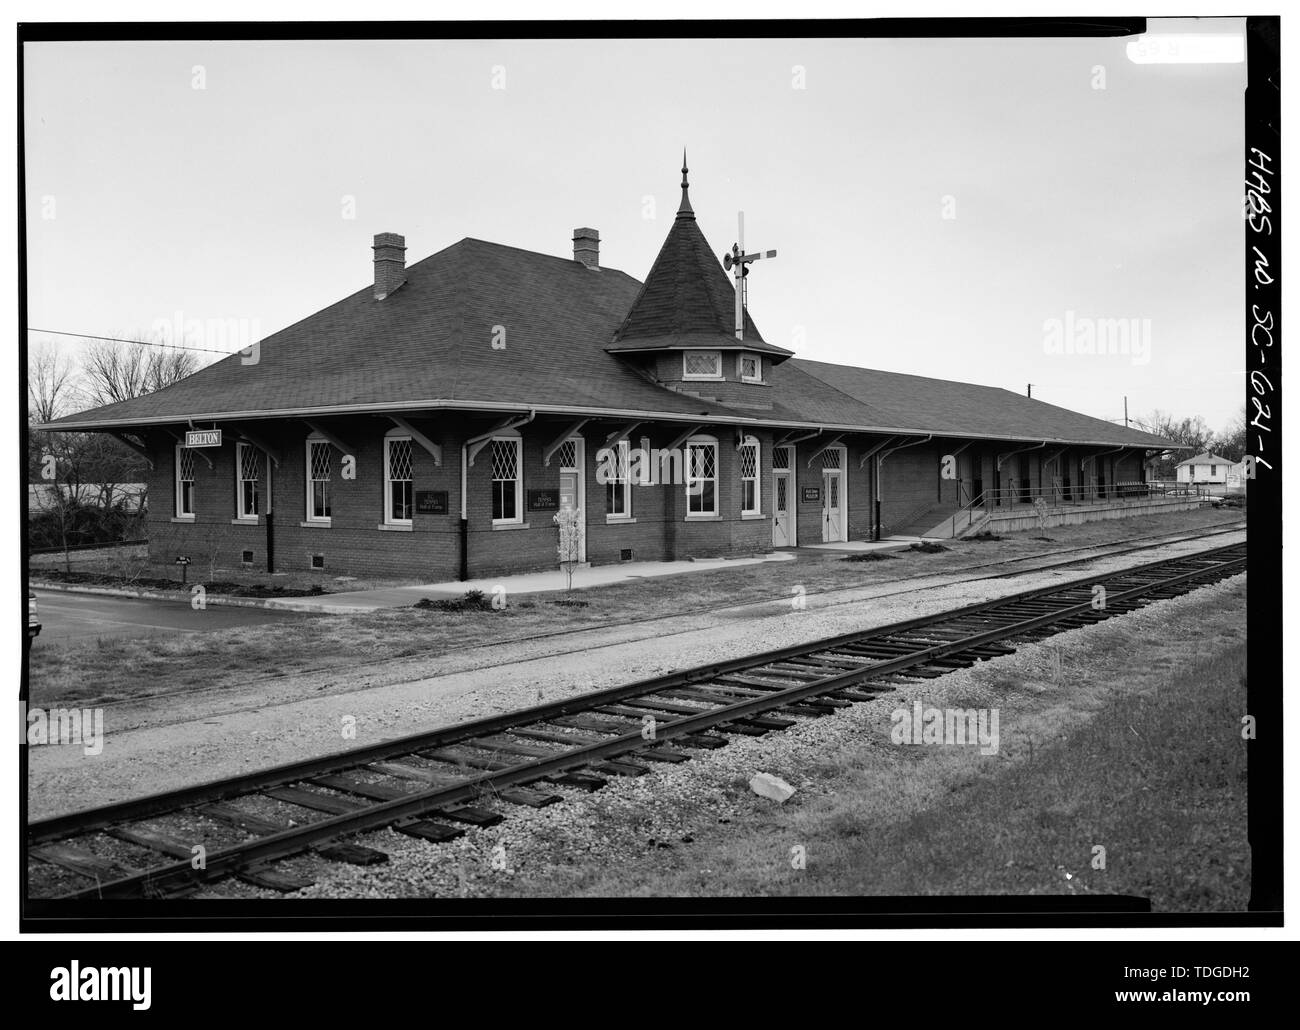 NORTHEAST (FRONT), LOOKING WEST - Southern Railway Combined Depot, West side of Belton Public Square, Belton, Anderson County, SC; Cary, Brian, transmitter - Stock Image